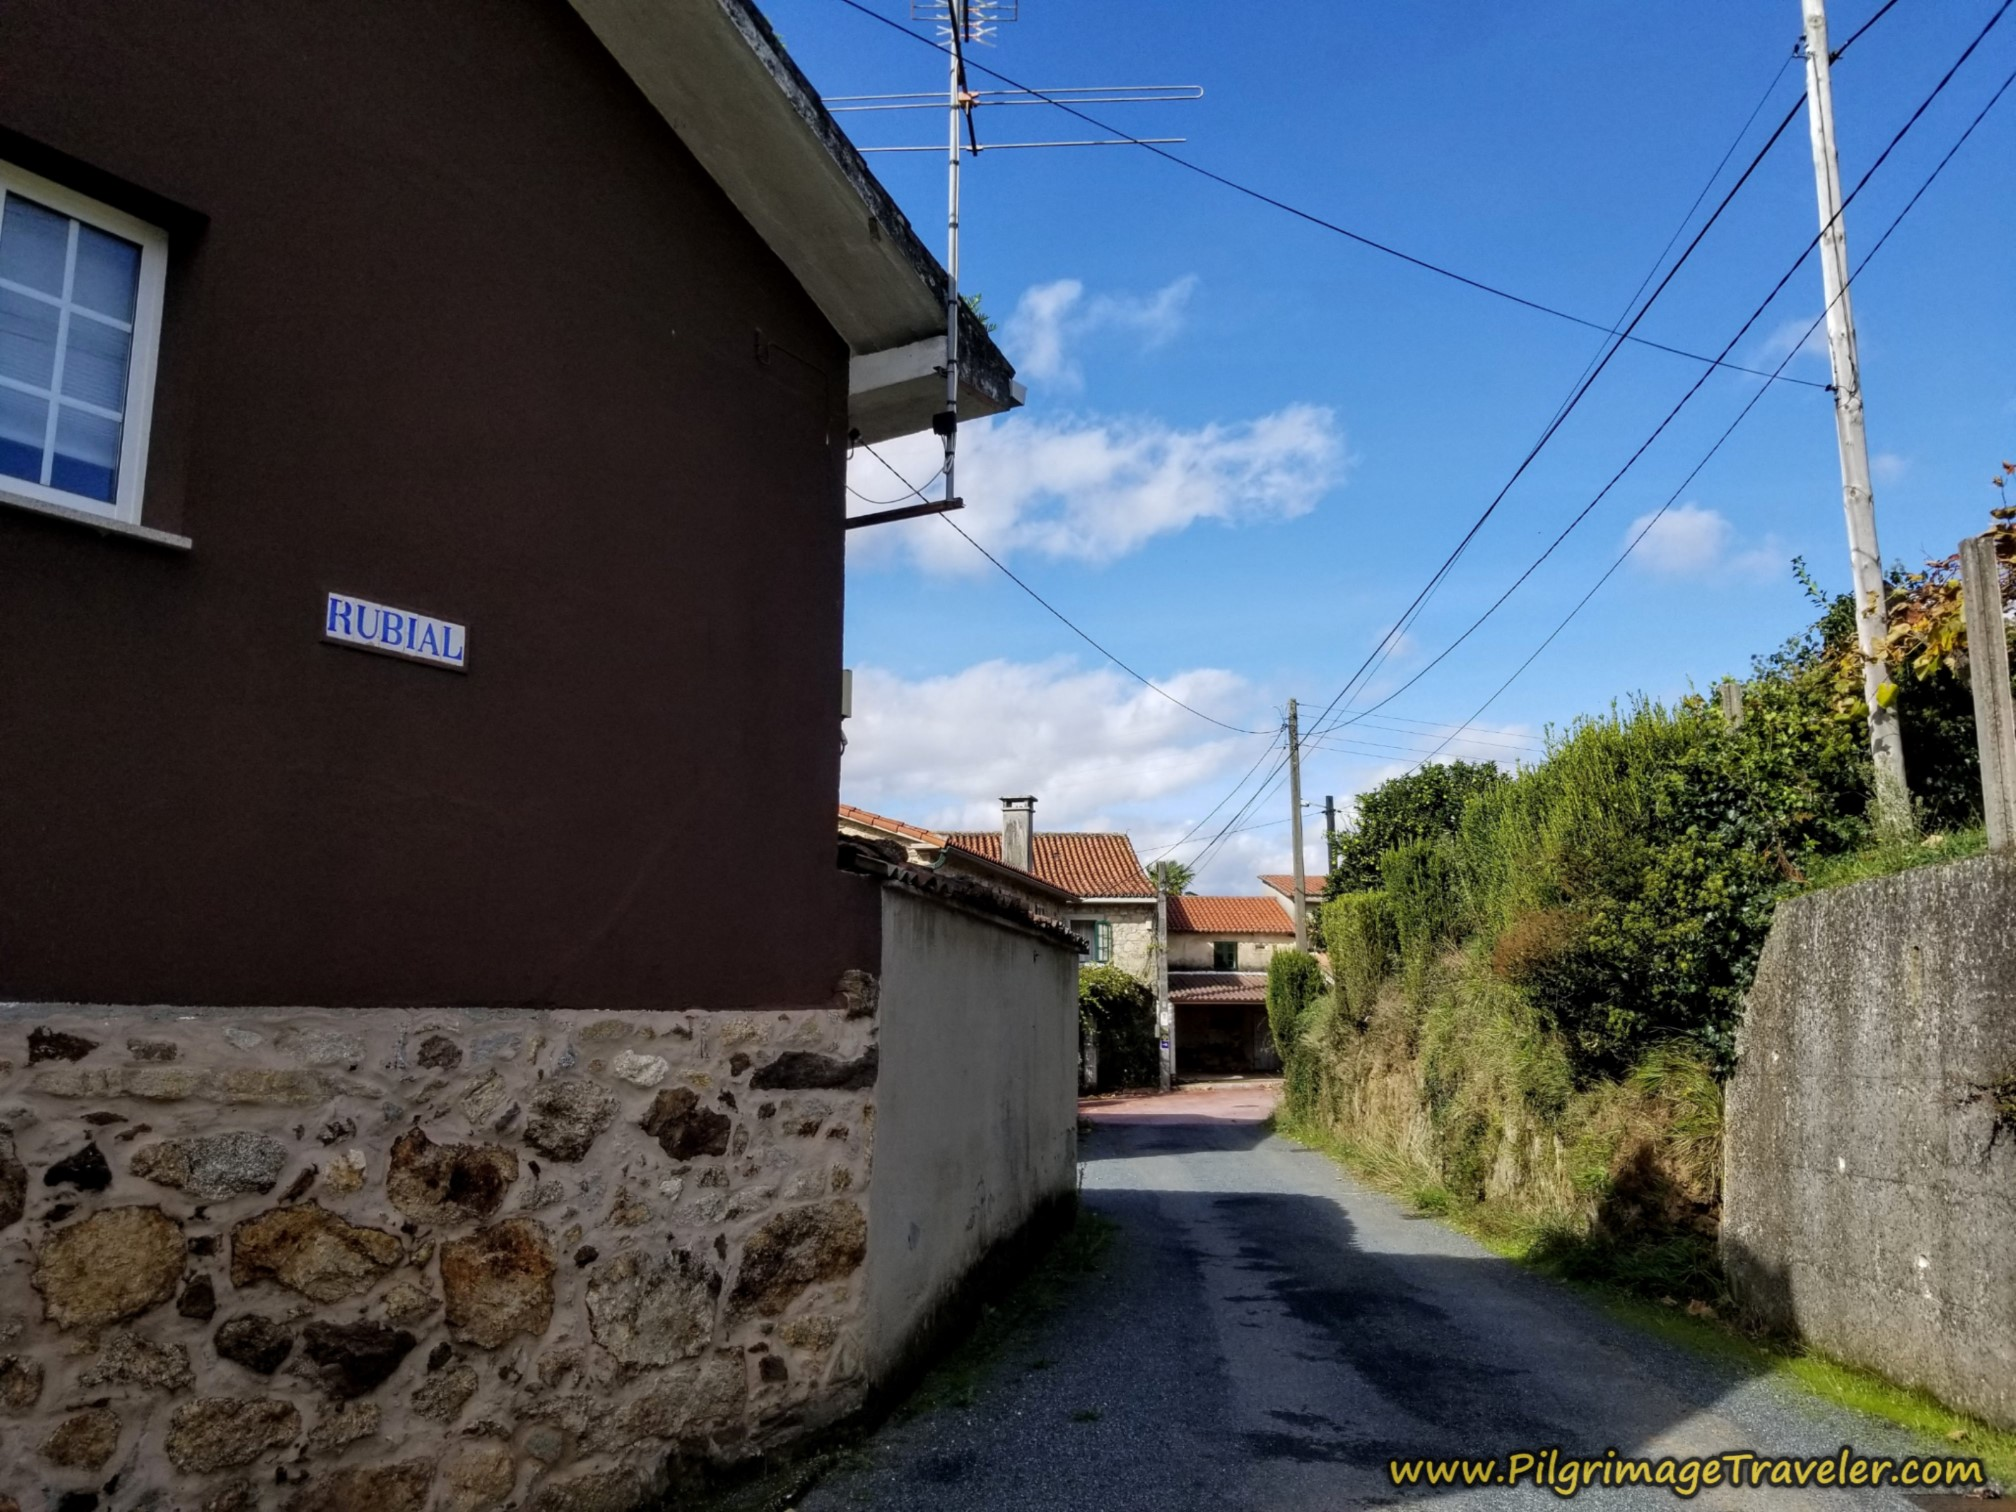 Right Turn in Rubial